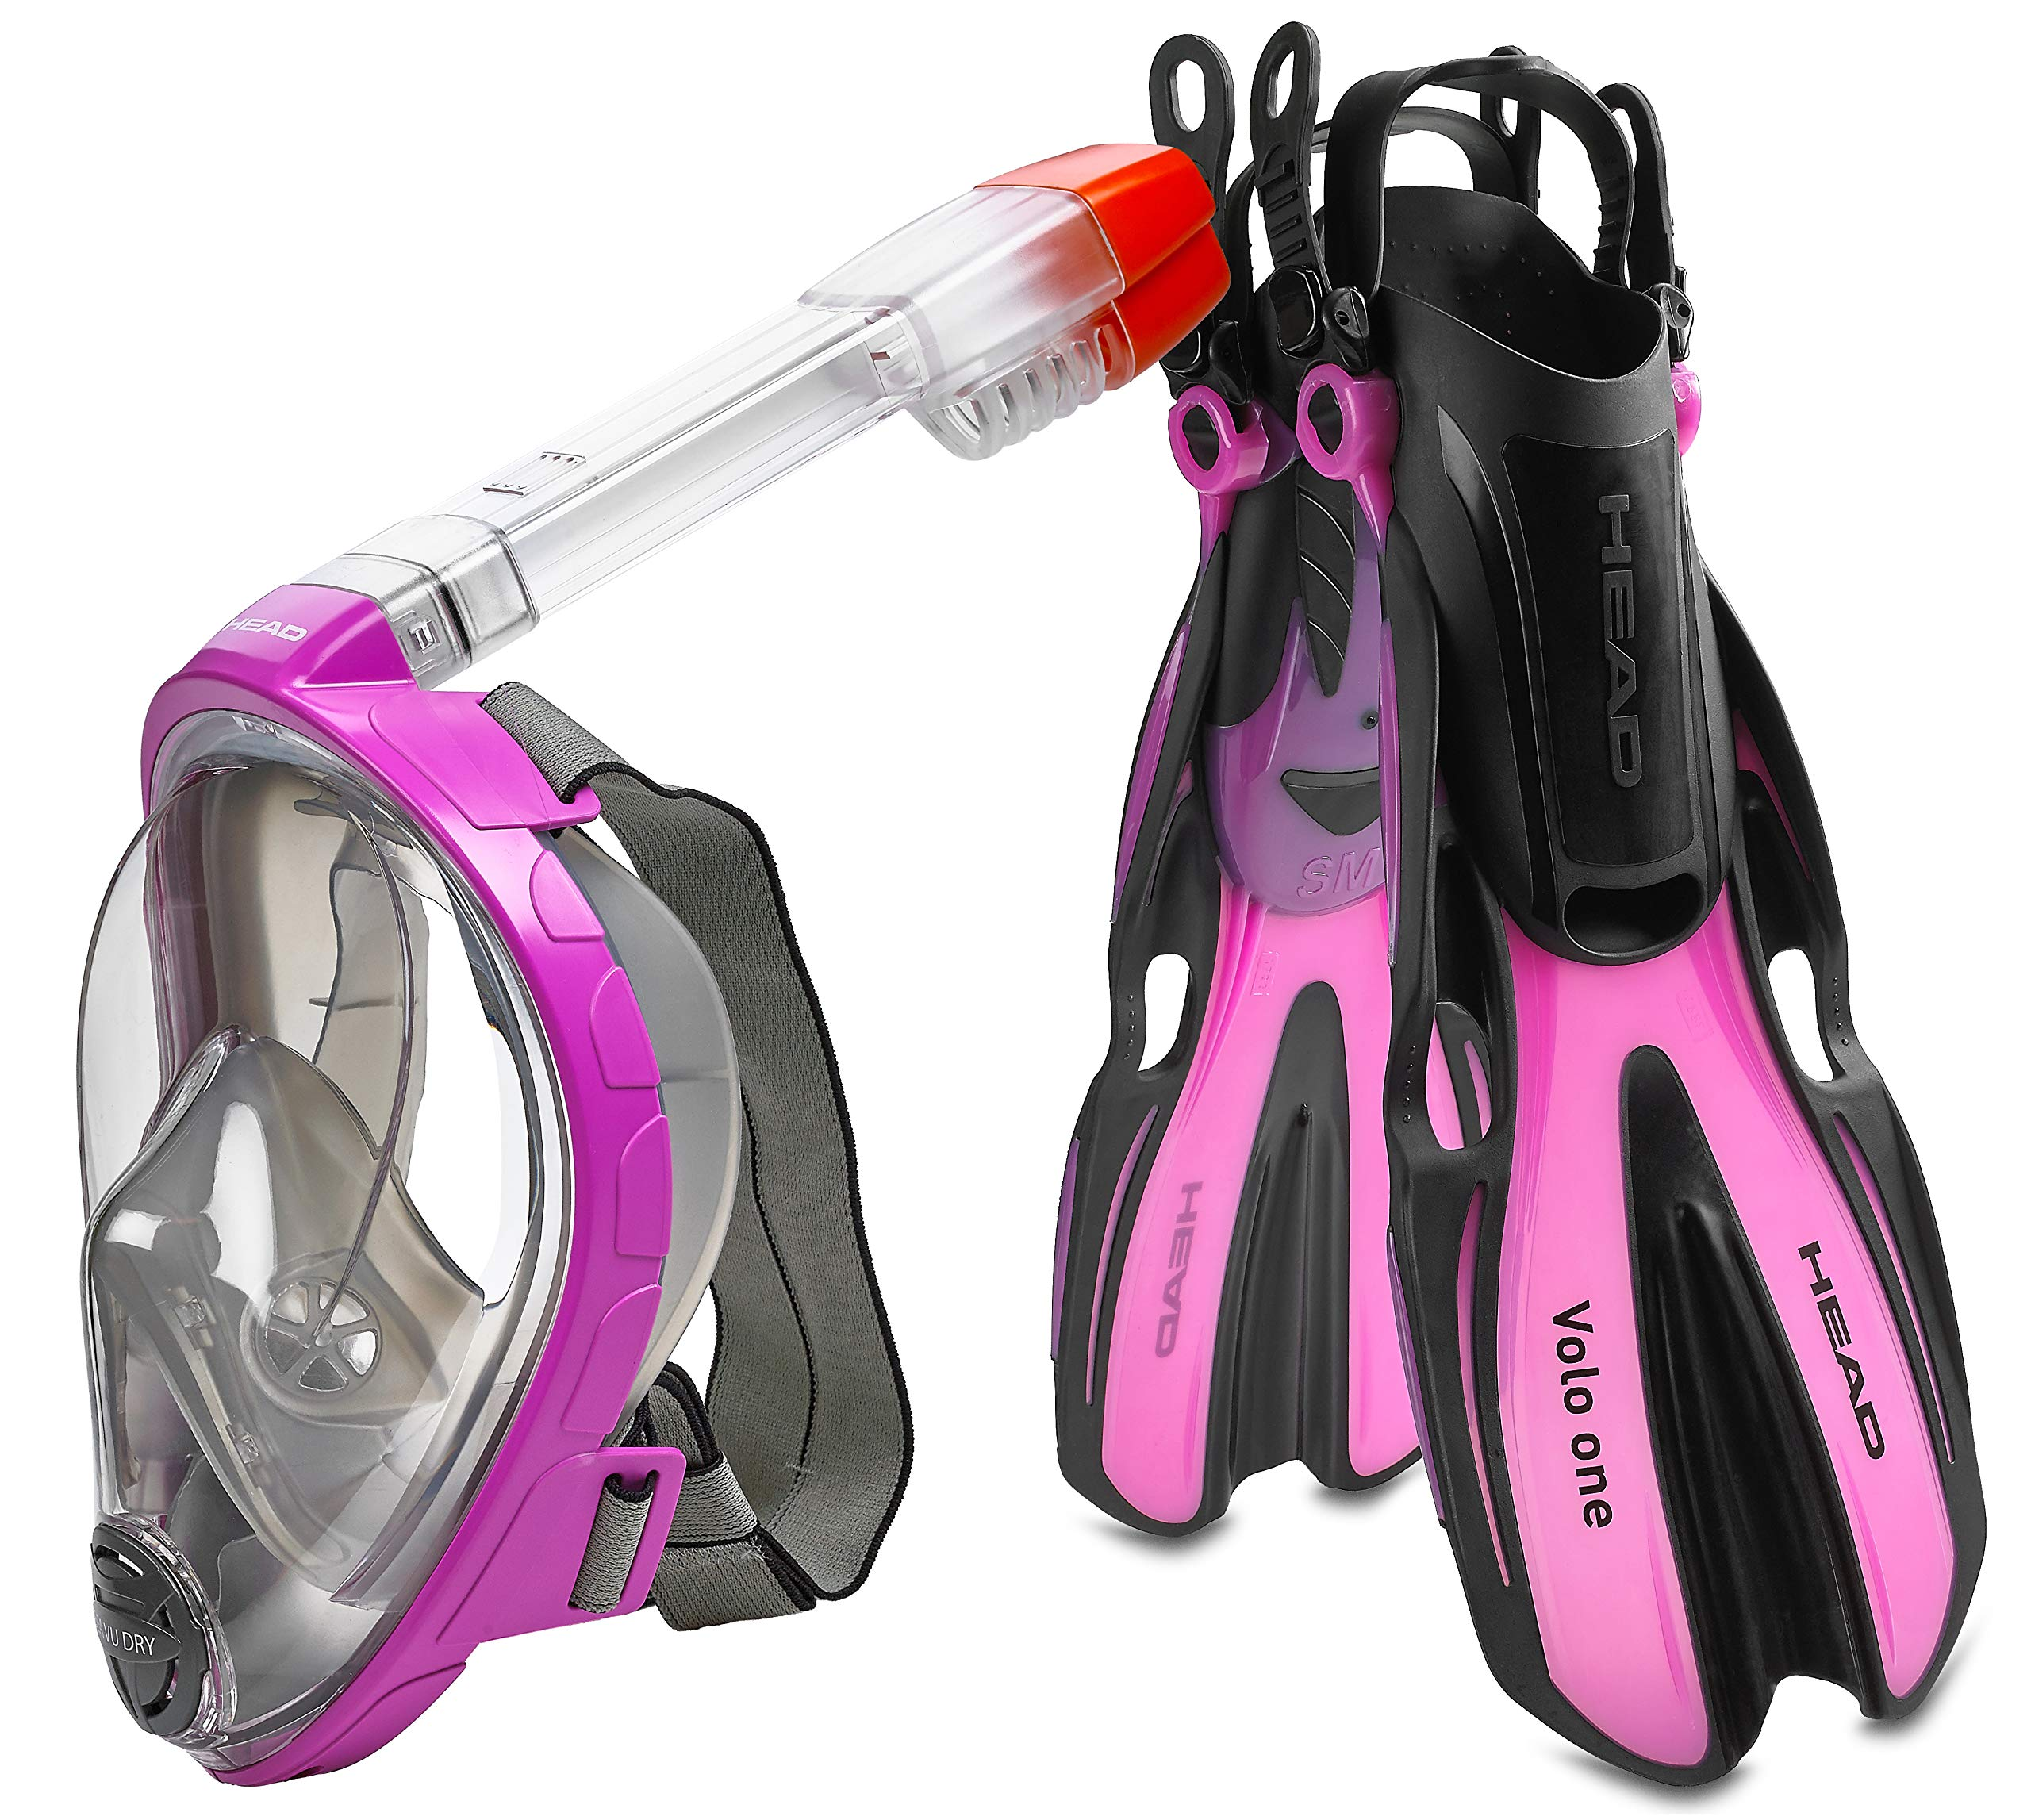 HEAD Sea View Dry Full Face Mask Fin Snorkel Set, Pink, Small/Medium (Made in Italy)